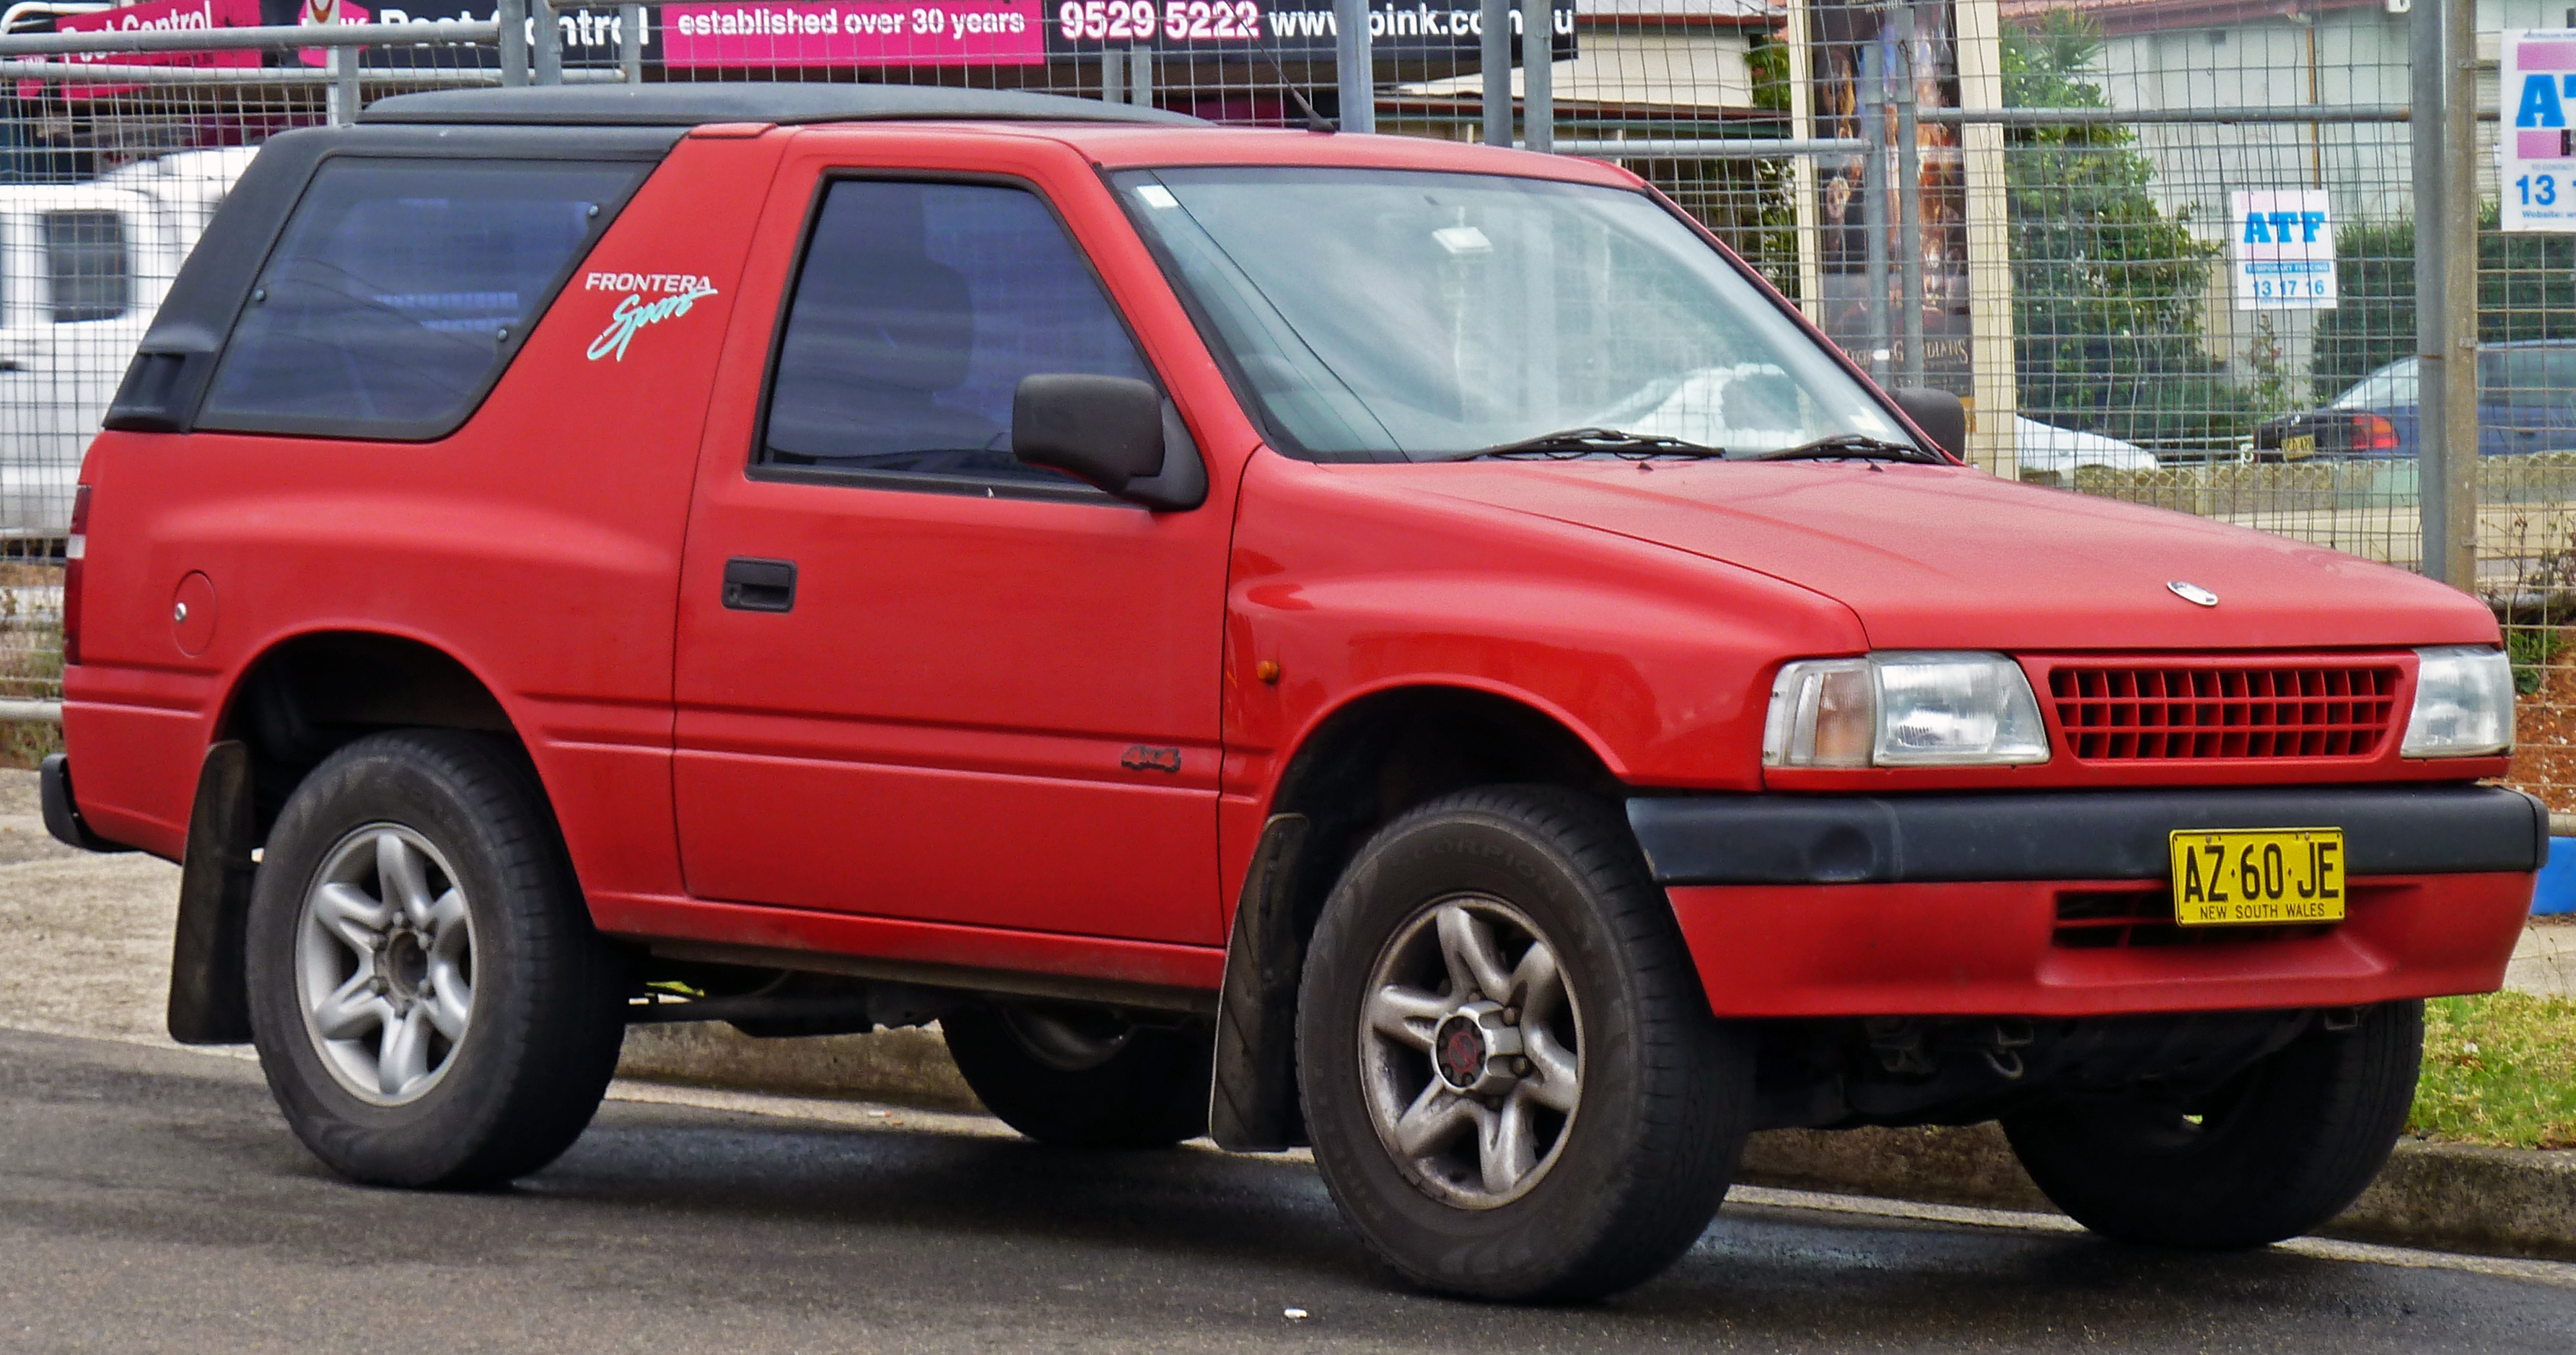 Holden Frontera 1998 - 2003 SUV 5 door #4